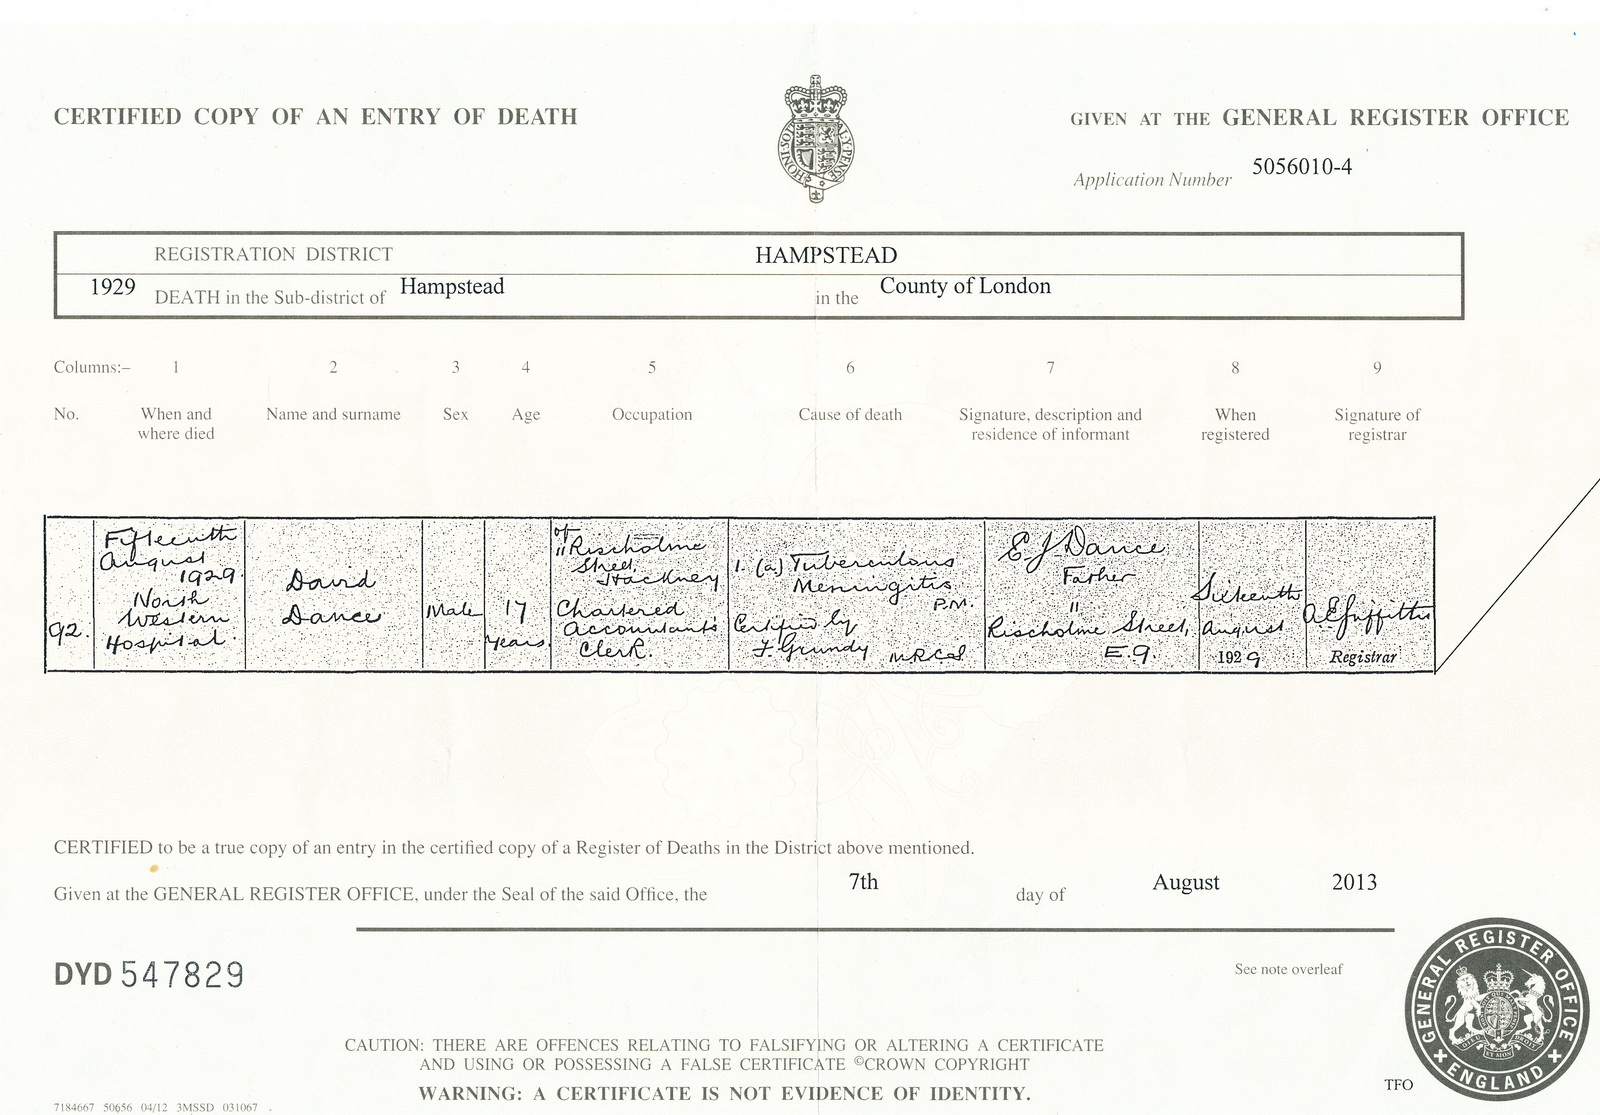 David Dance death certificate